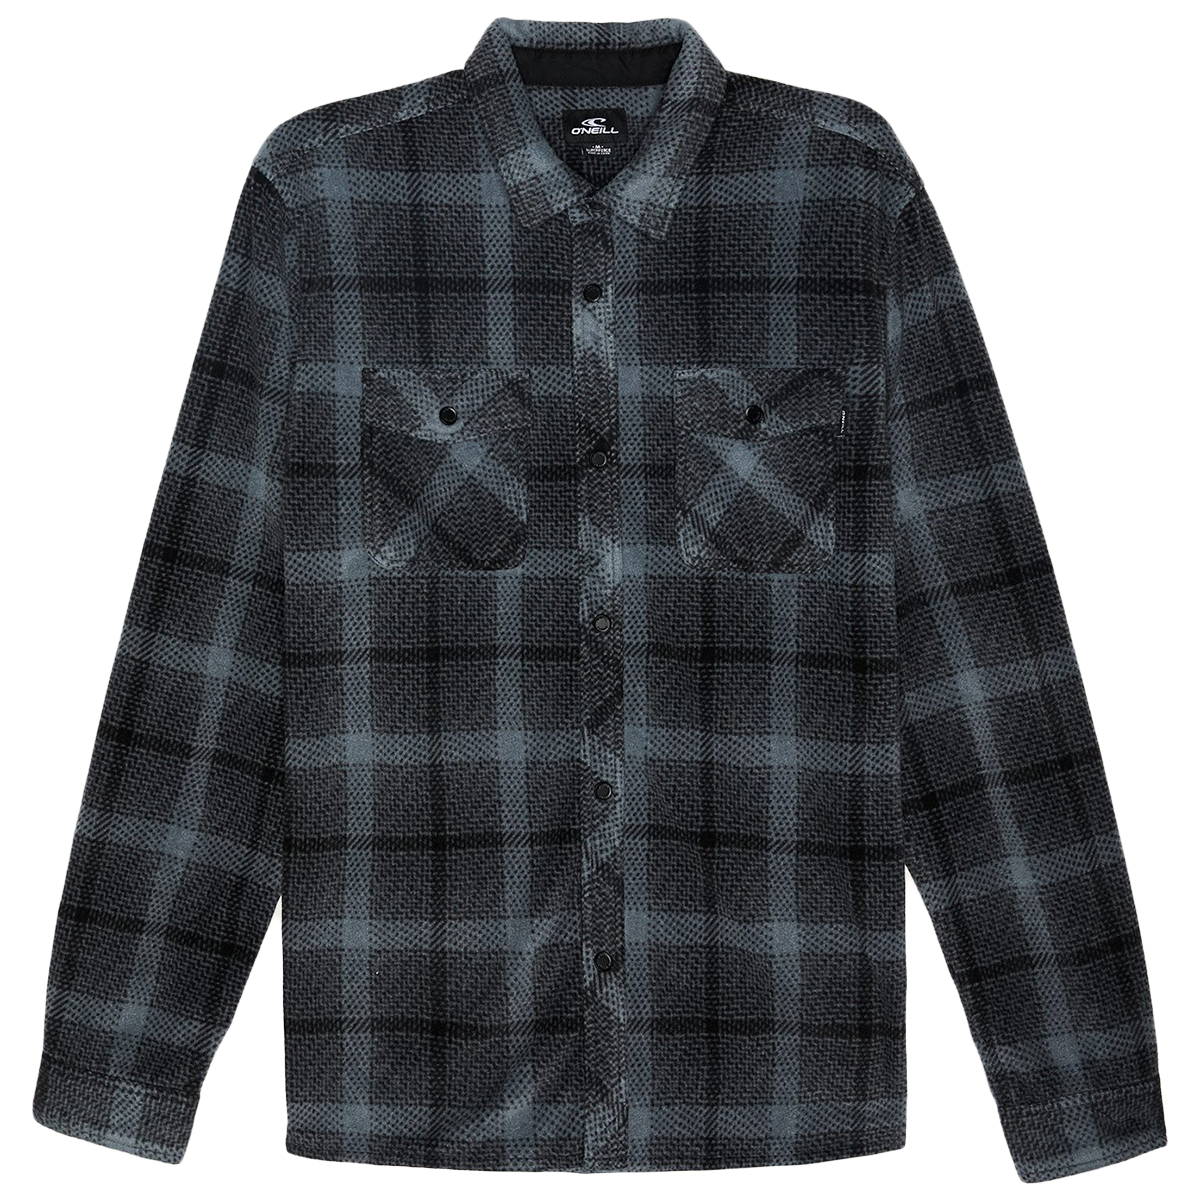 O'neill Men's Glacier Peak Long-Sleeve Flannel Shirt - Blue, L